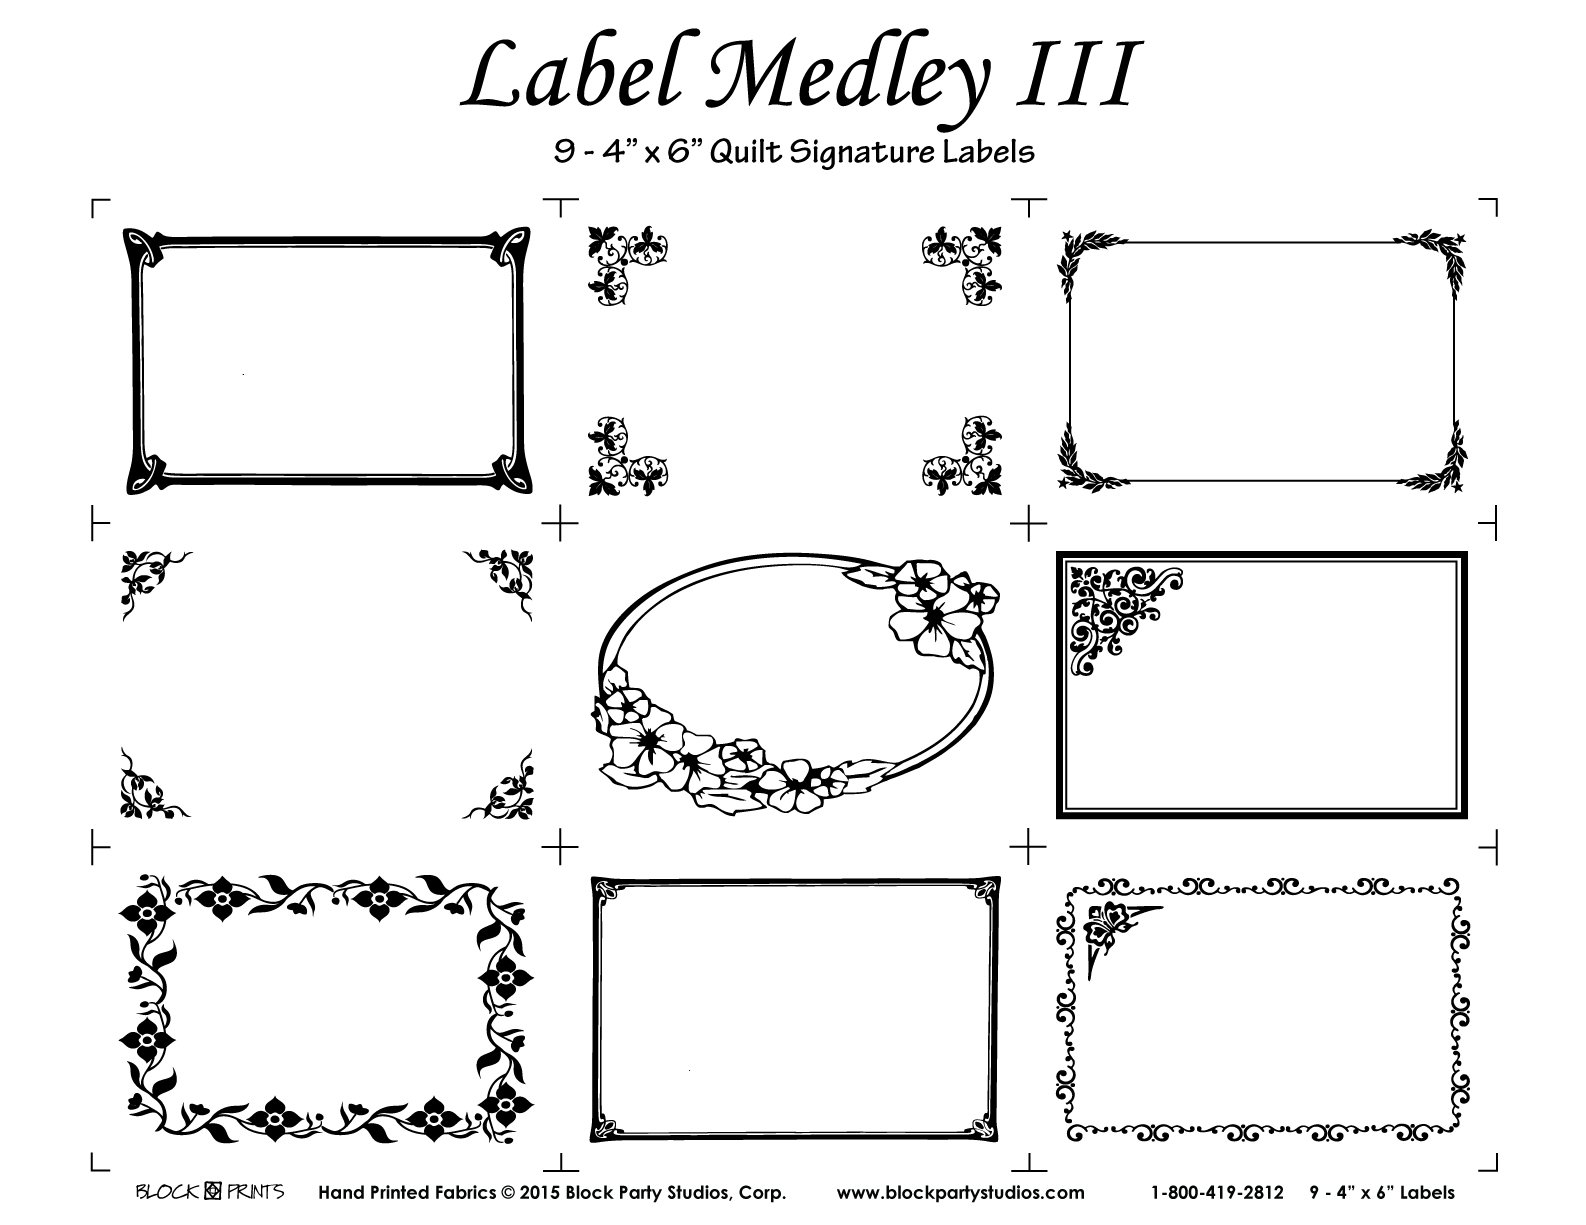 Label Medley III Panel